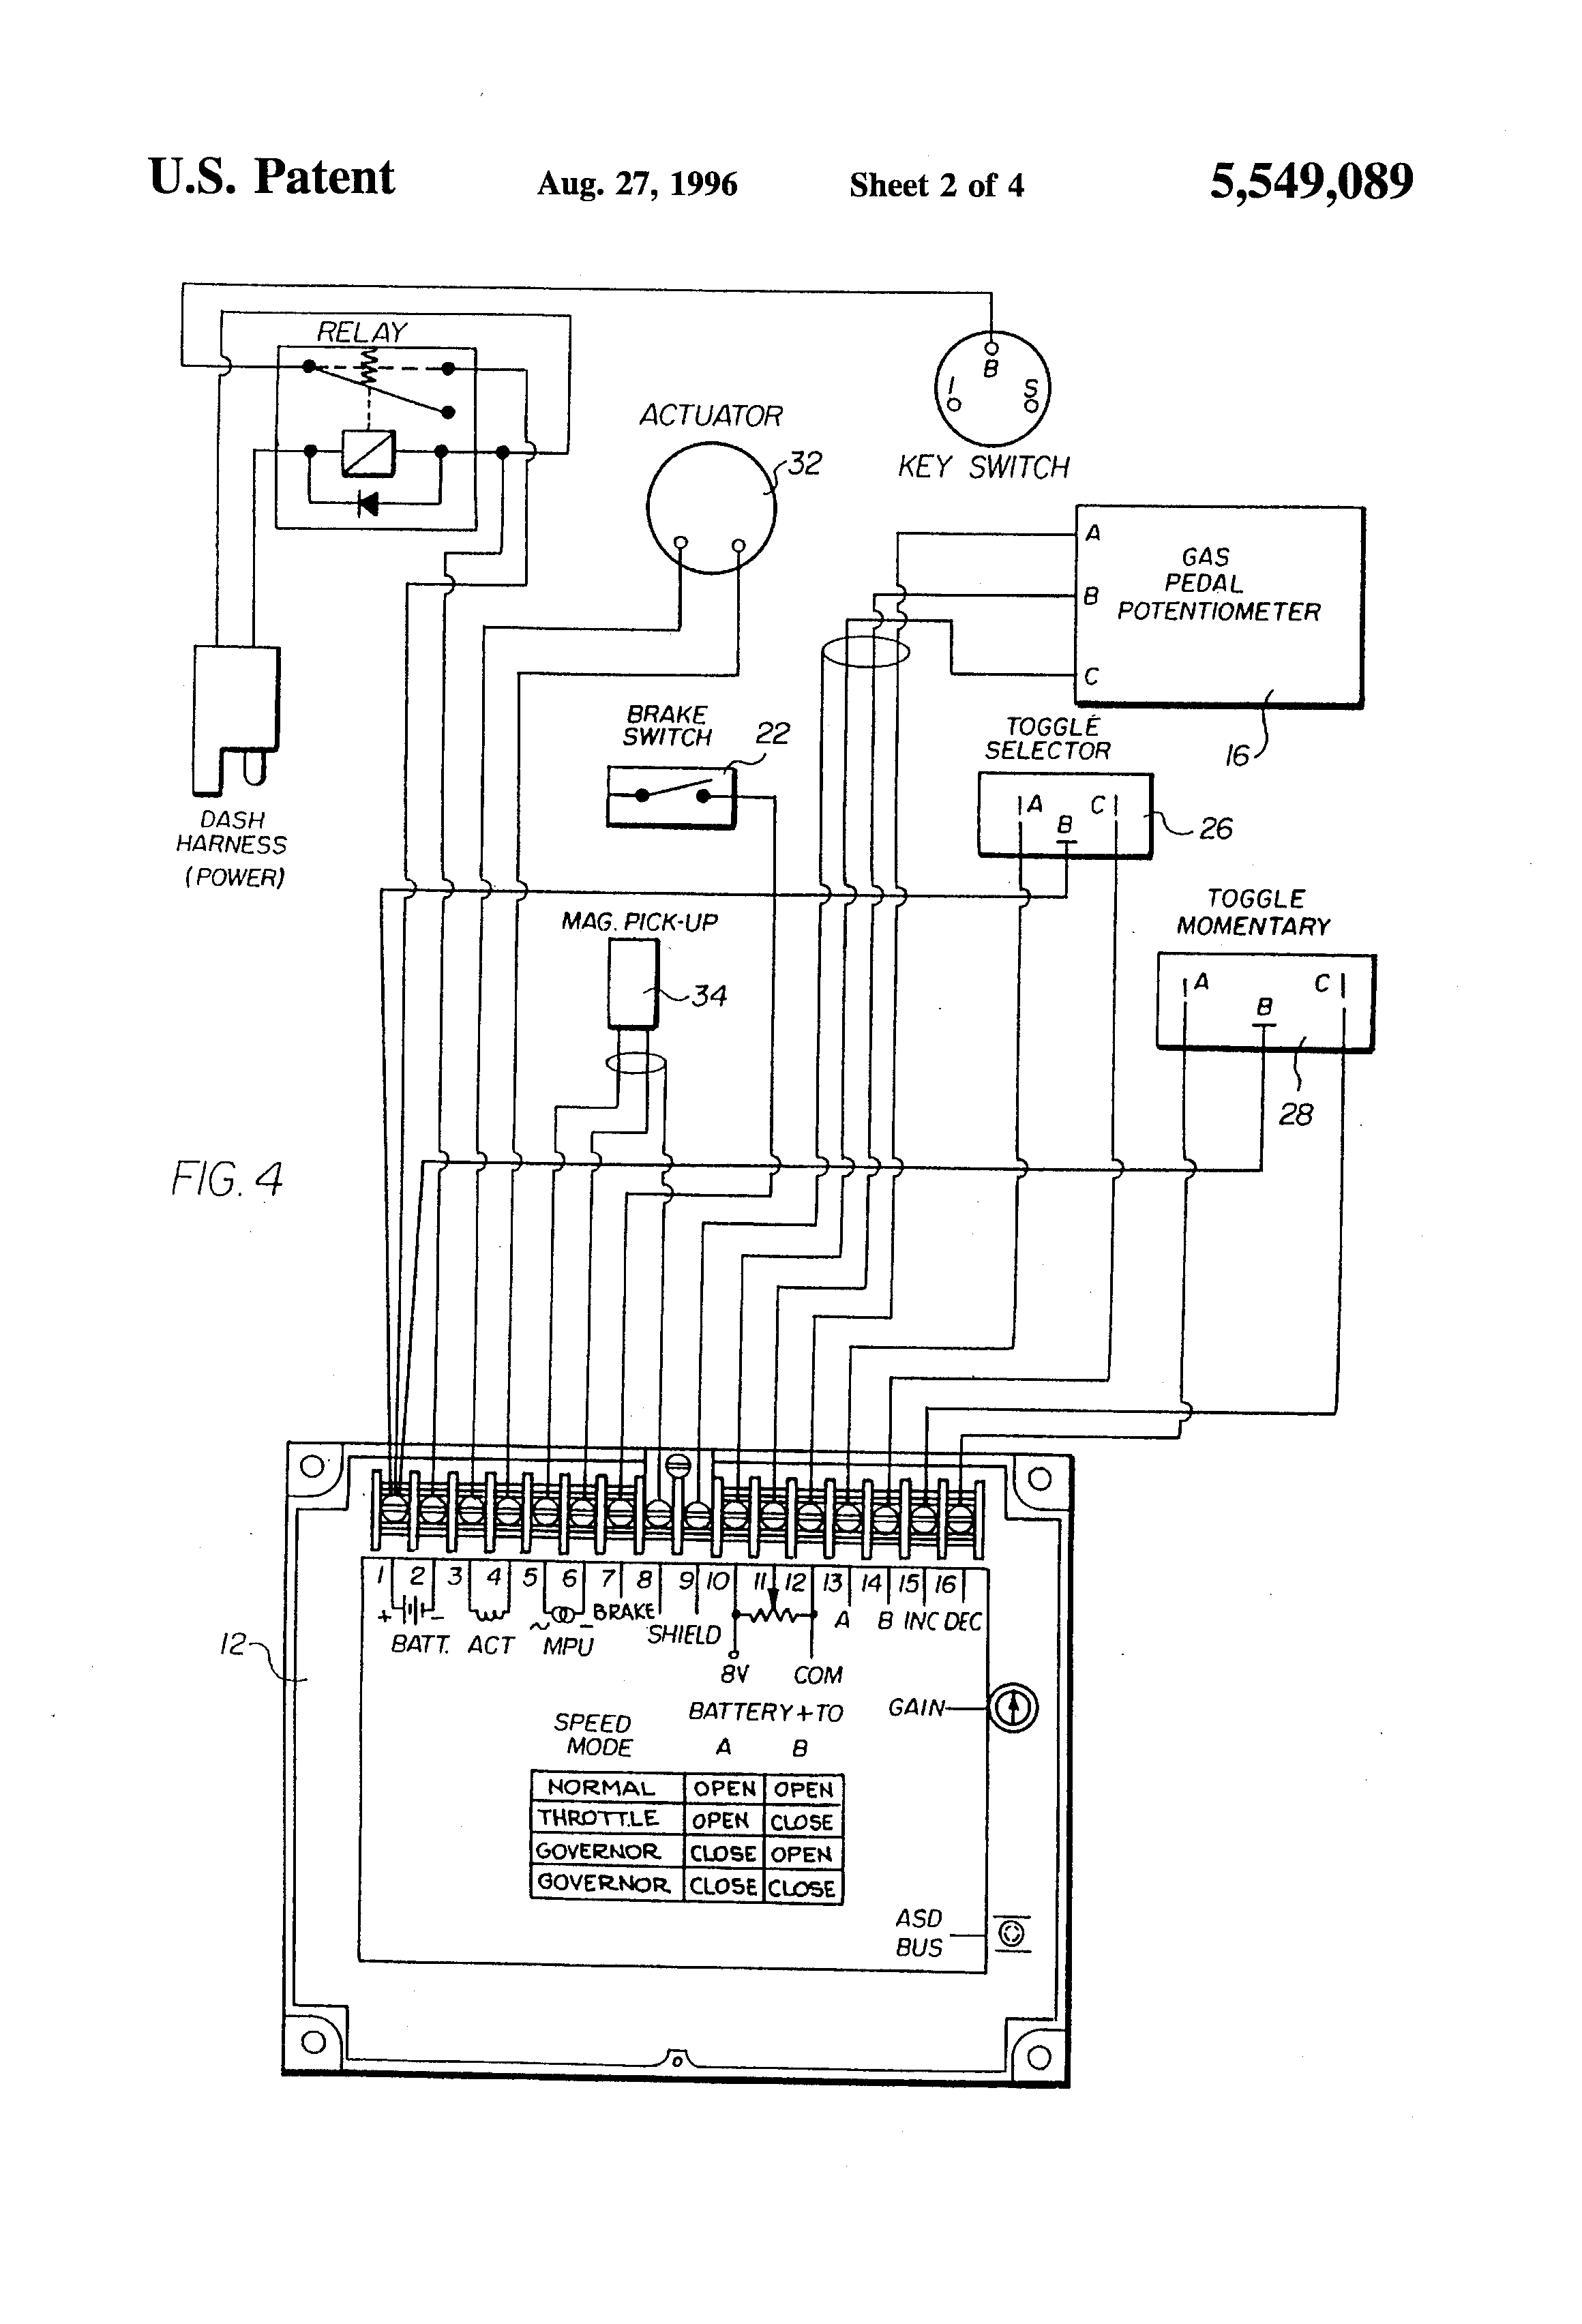 cushman-minute-miser-wiring-diagram-10 Qsm Mins Wiring Diagram on